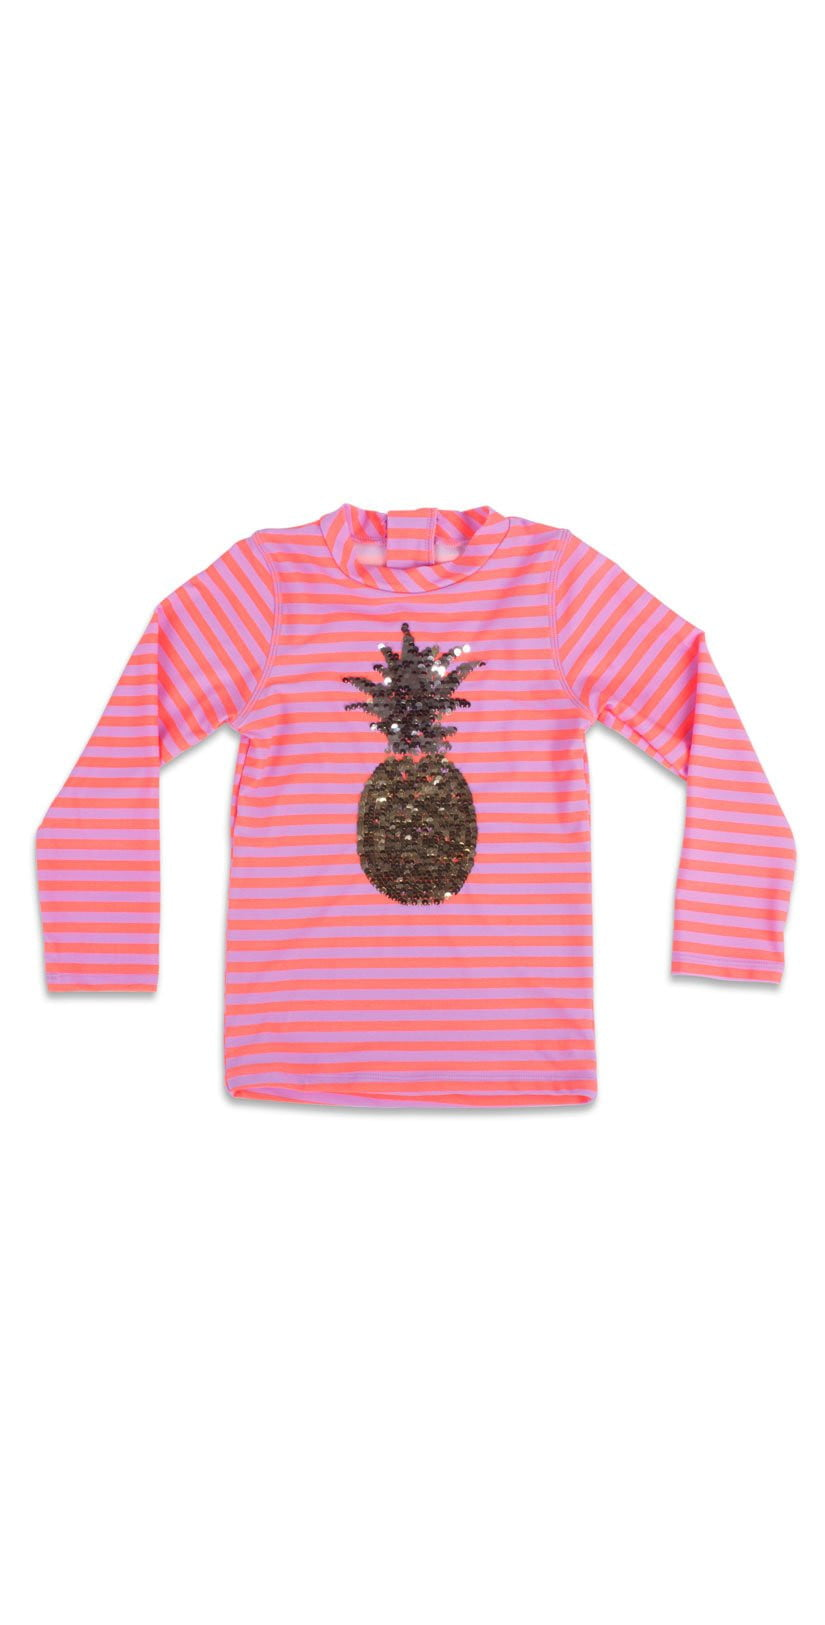 Shade Critters Girl's Magic Sequin Pineapple Rashguard Top SG03A-PIN: